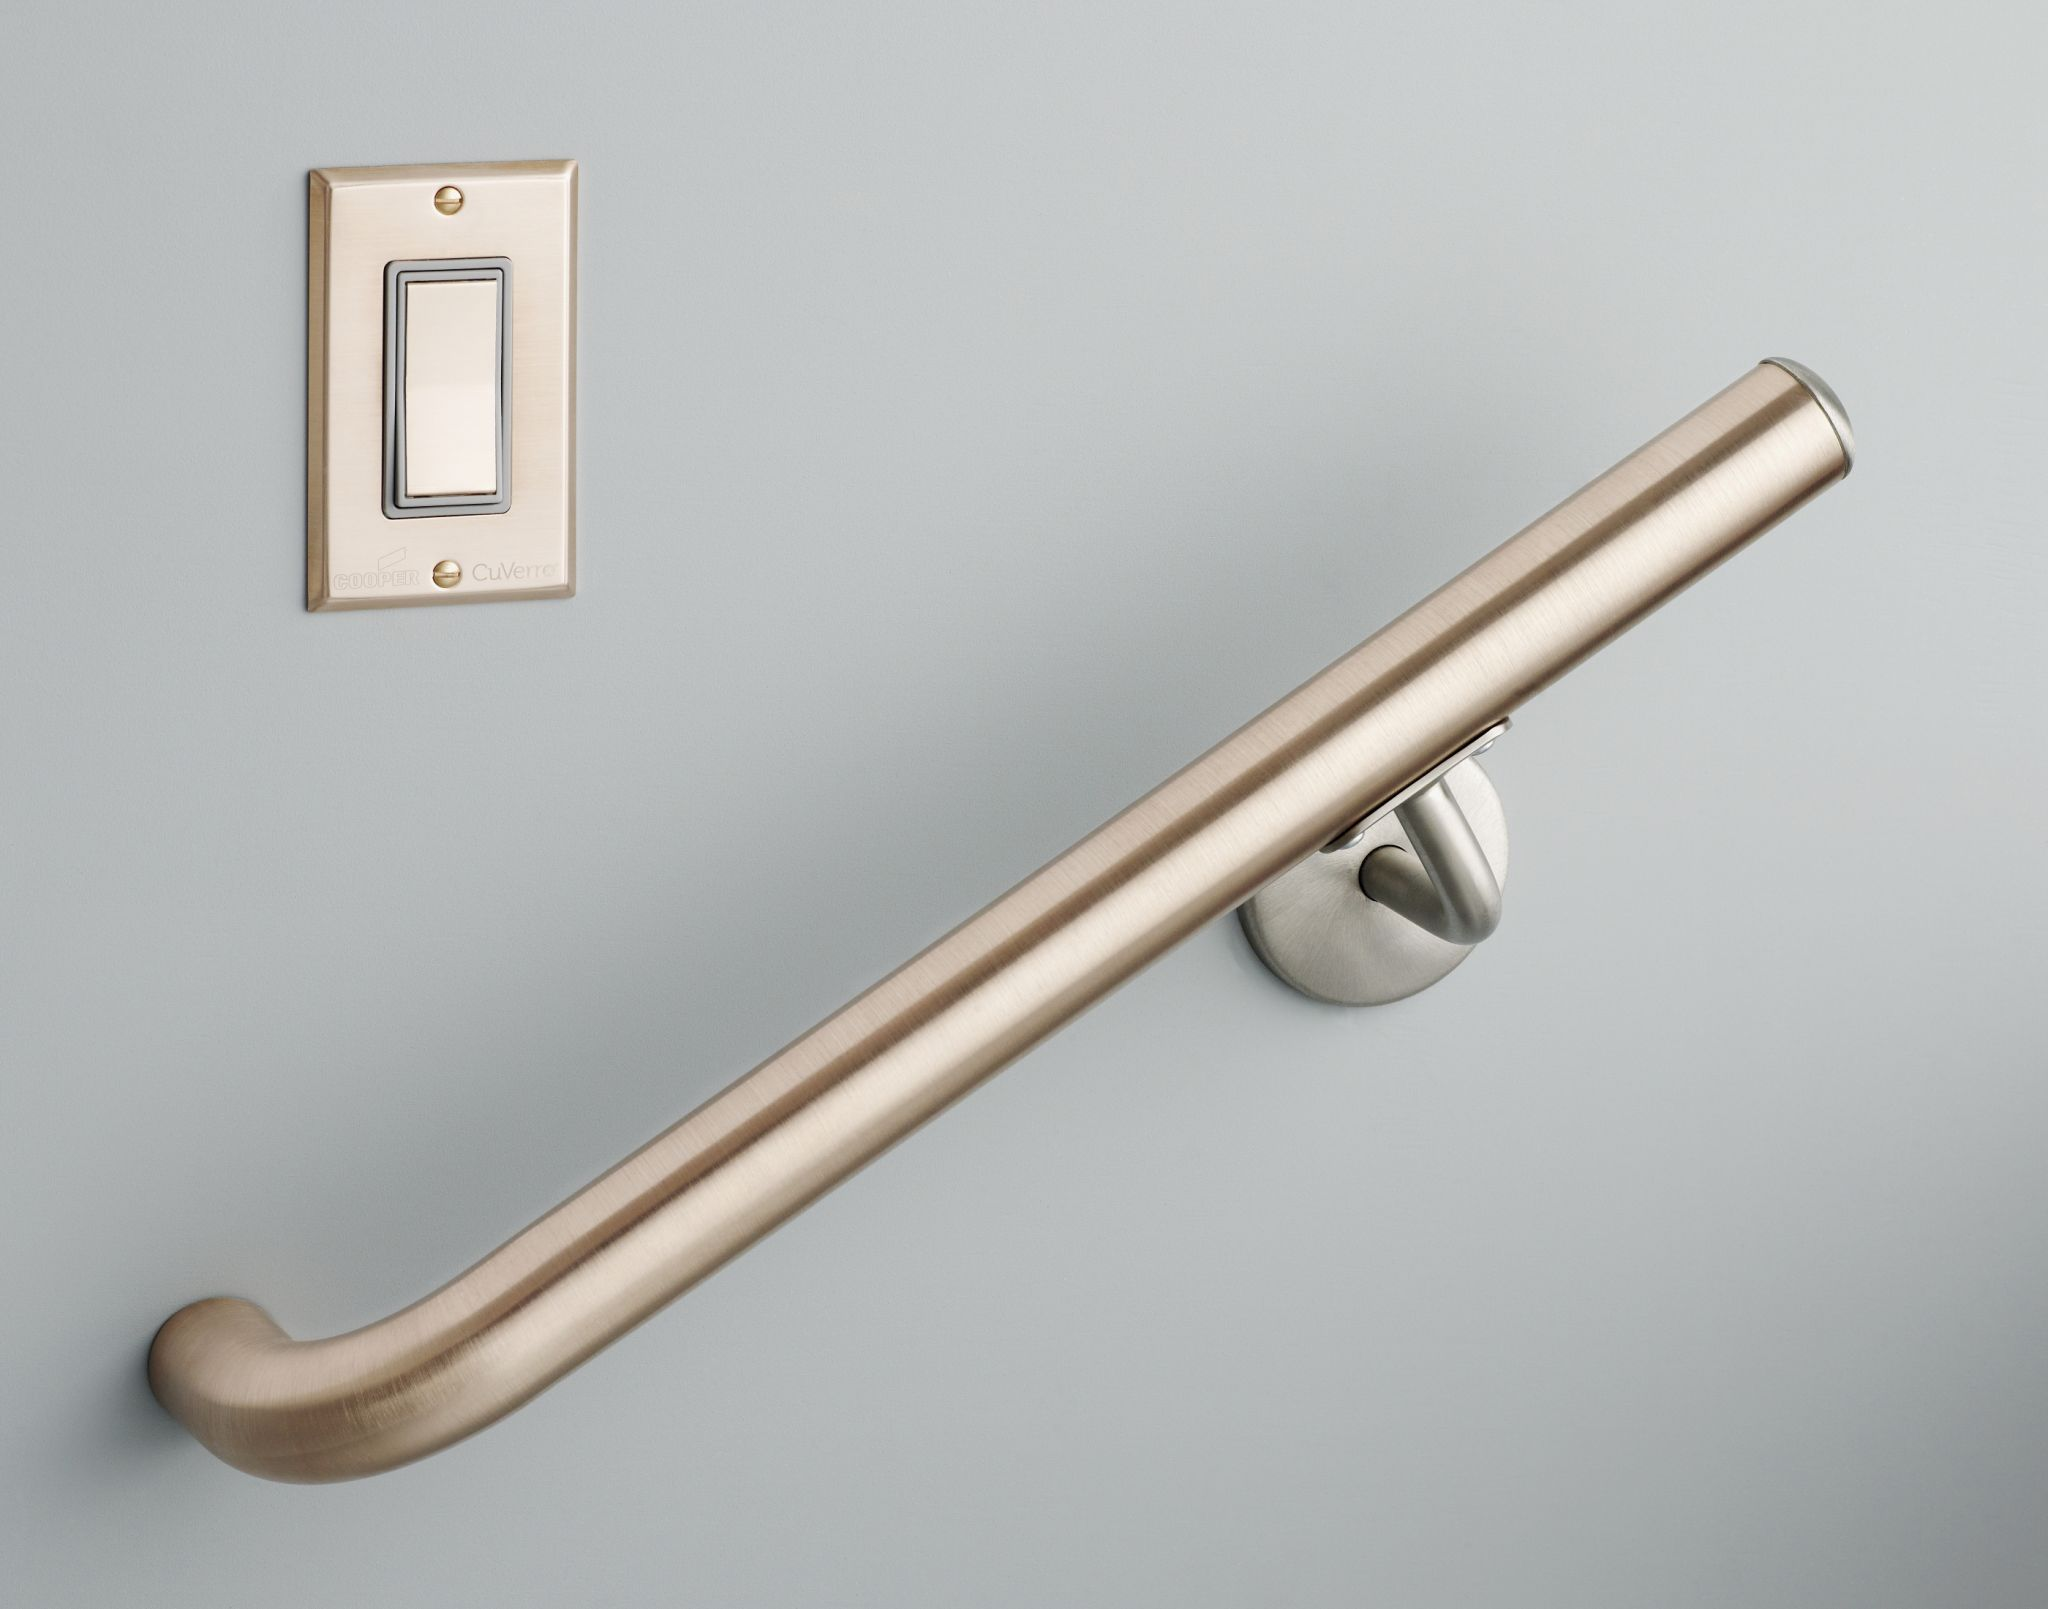 Cabinet hardware made from antimicrobial copper.